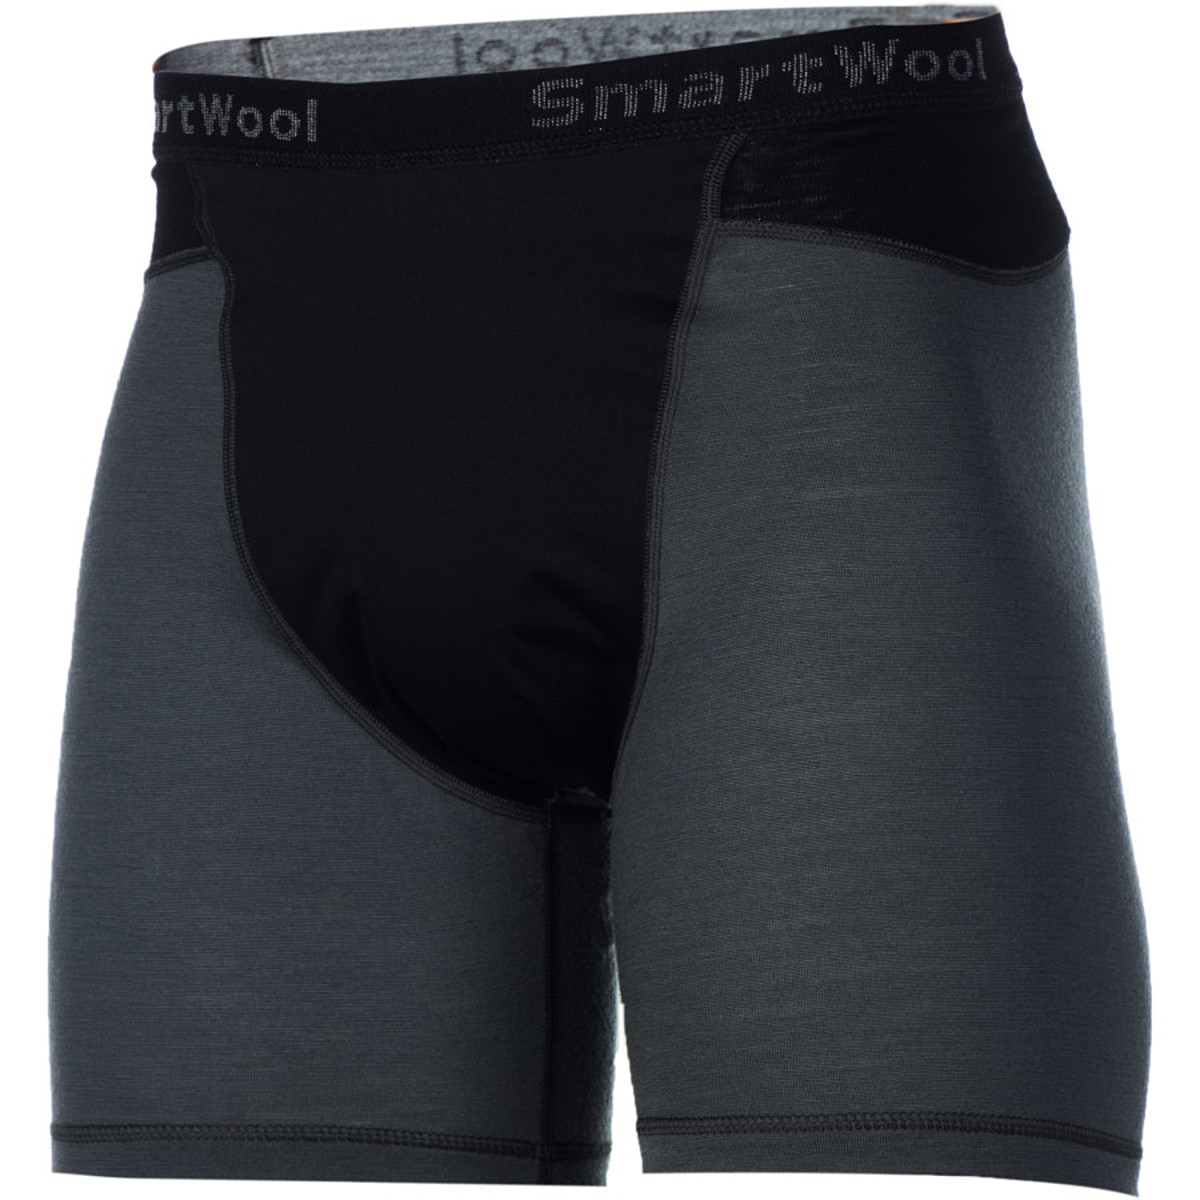 Smartwool Lightweight Wind Boxer Briefs